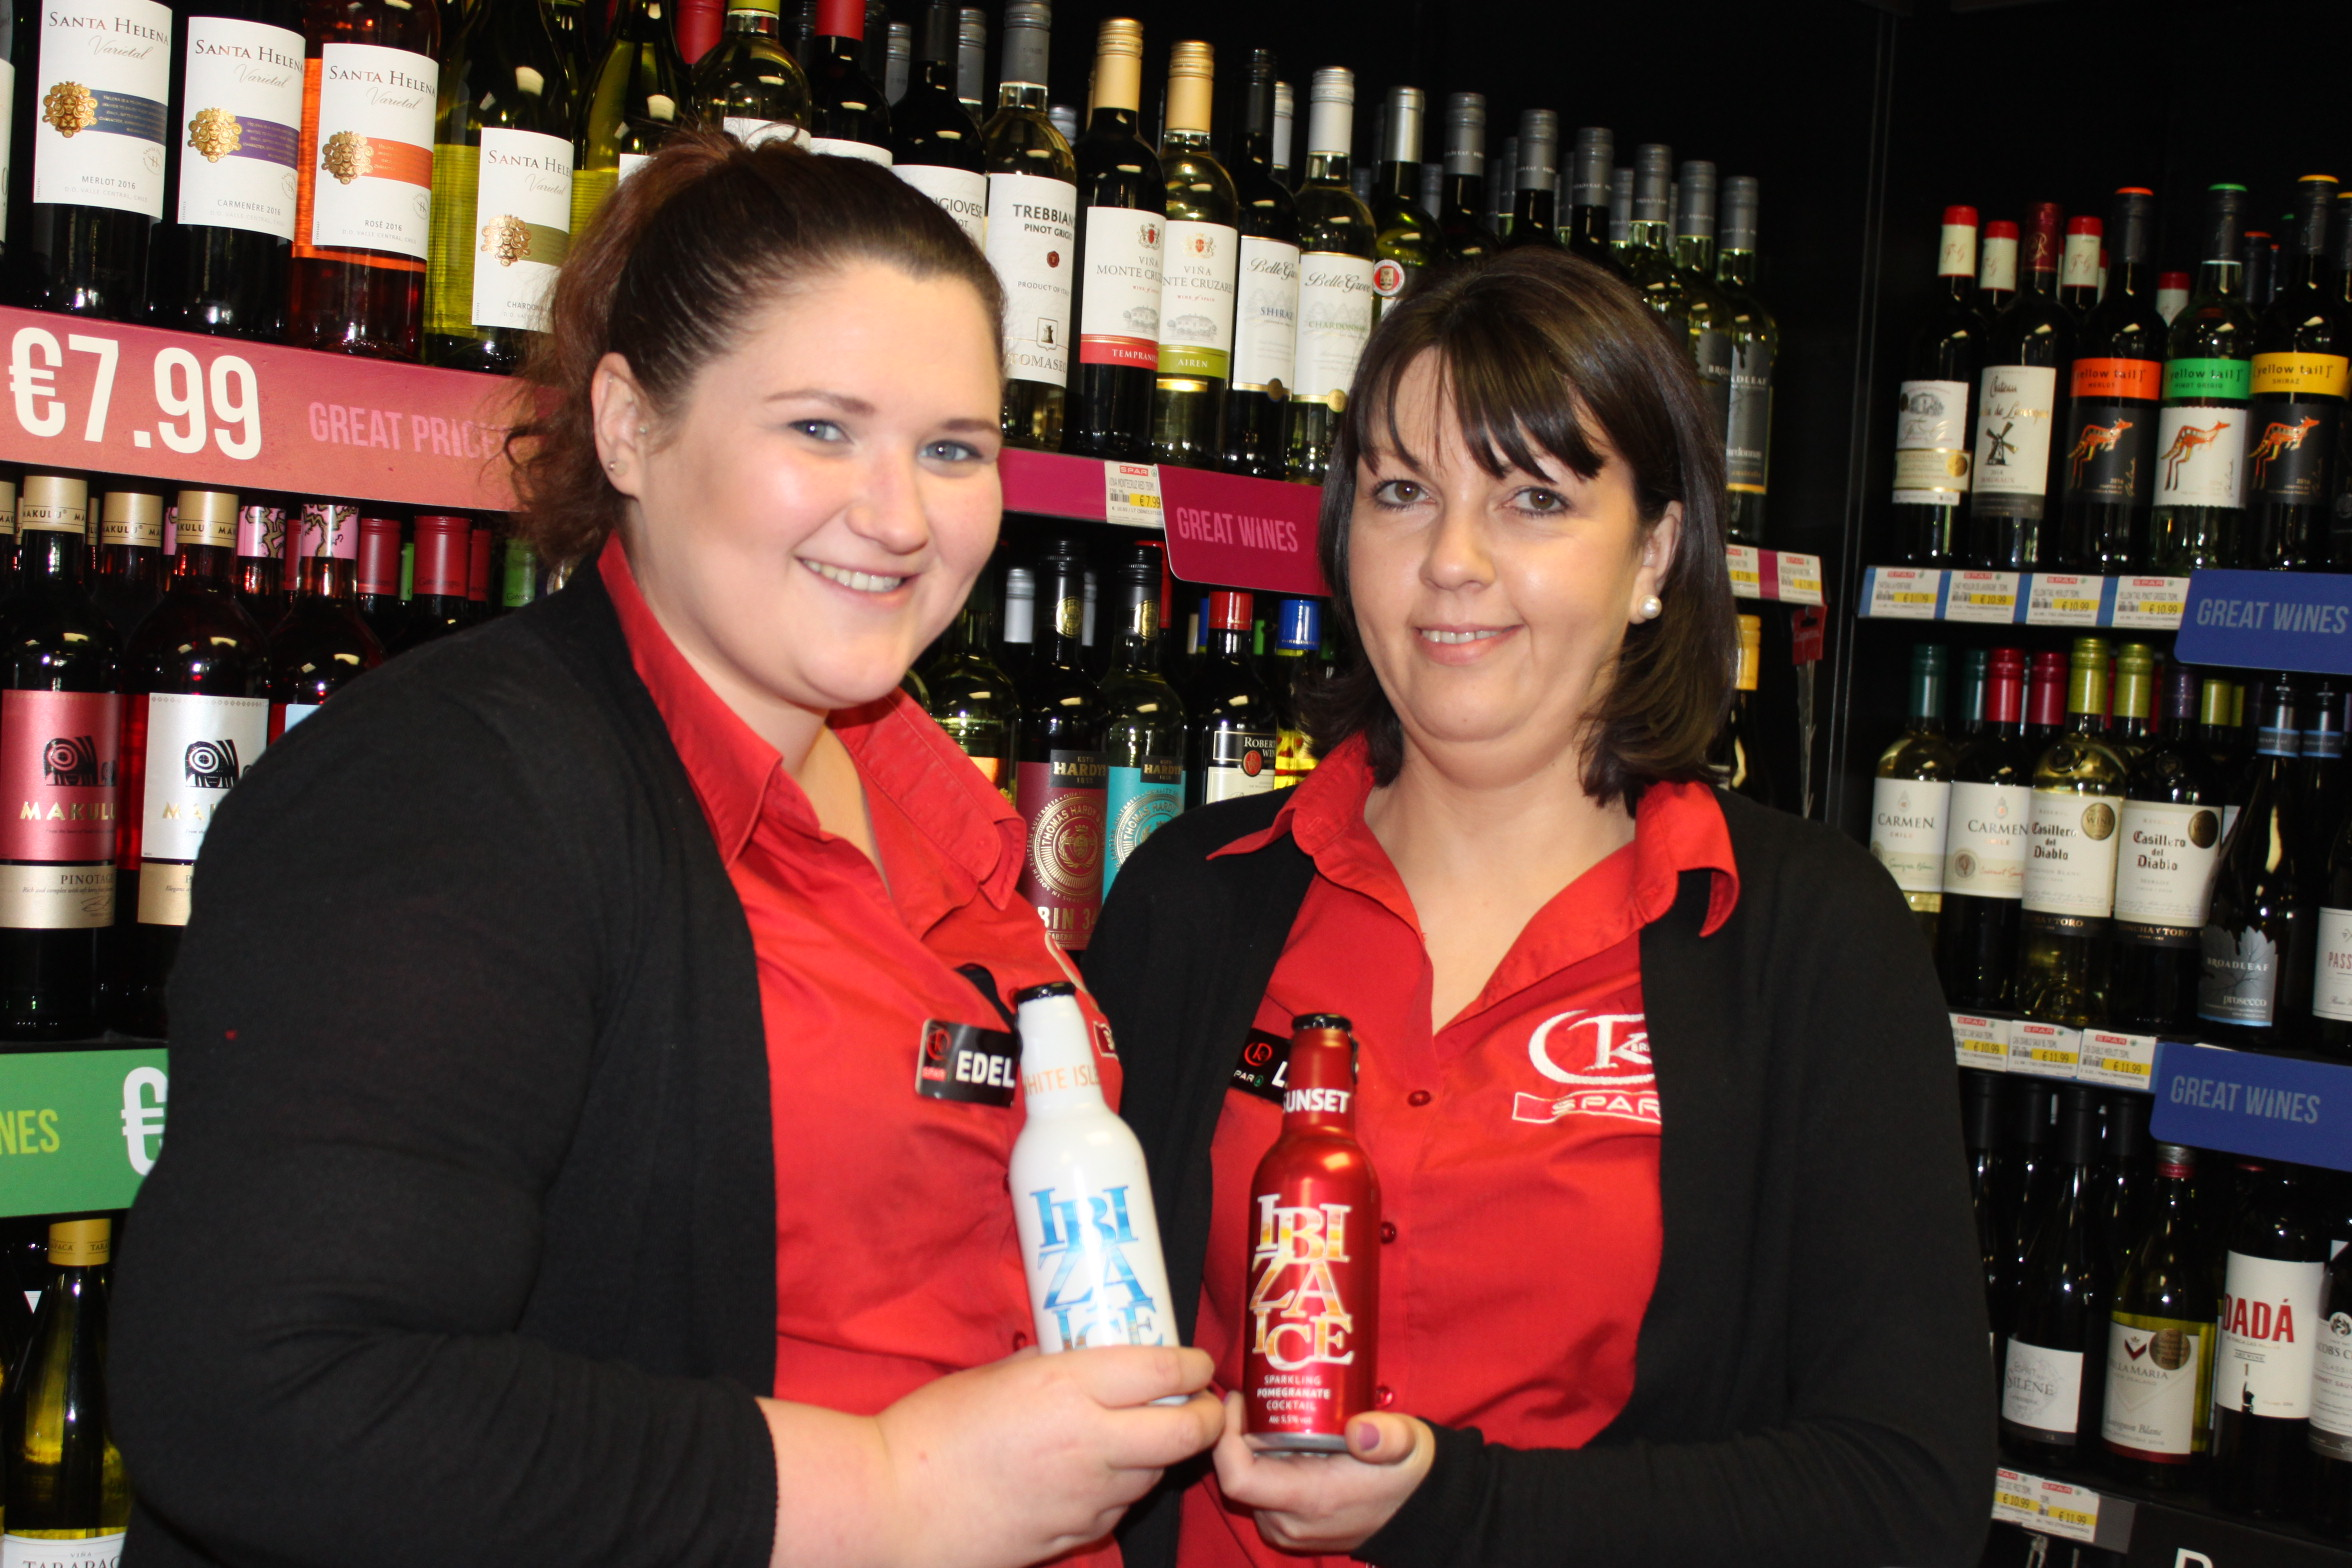 Laura and Edel at the off licence